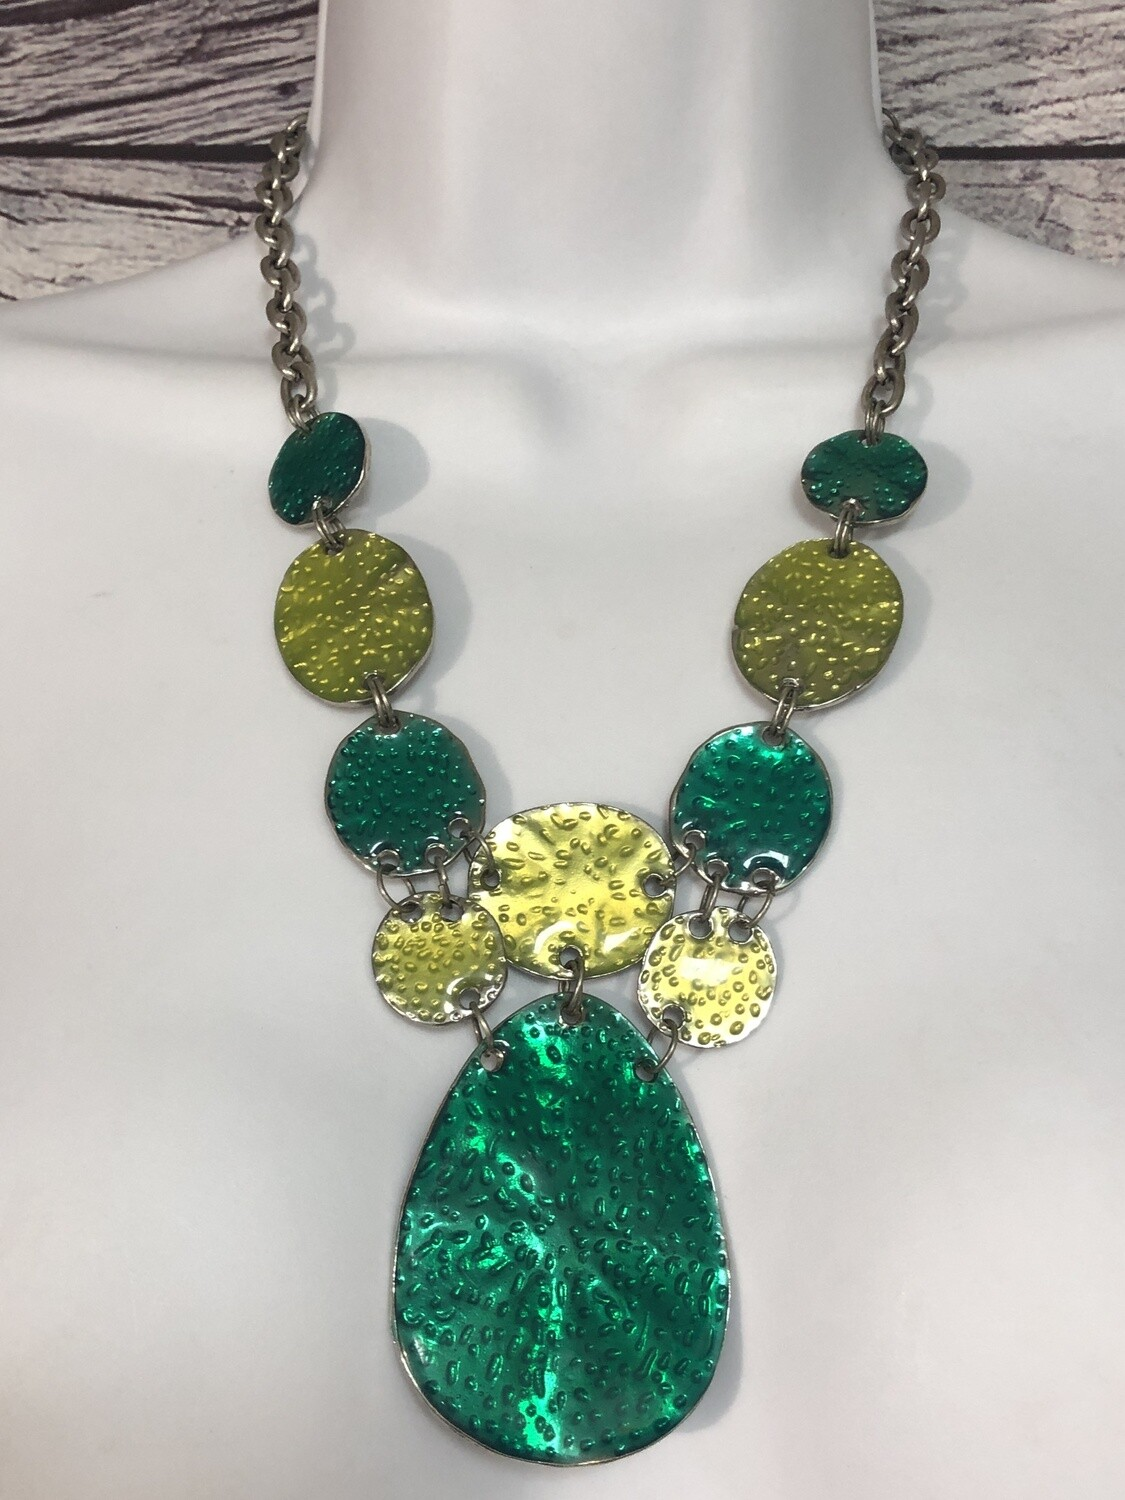 RUBY ROAD Green, Chartreuse & Silver Statement Necklace